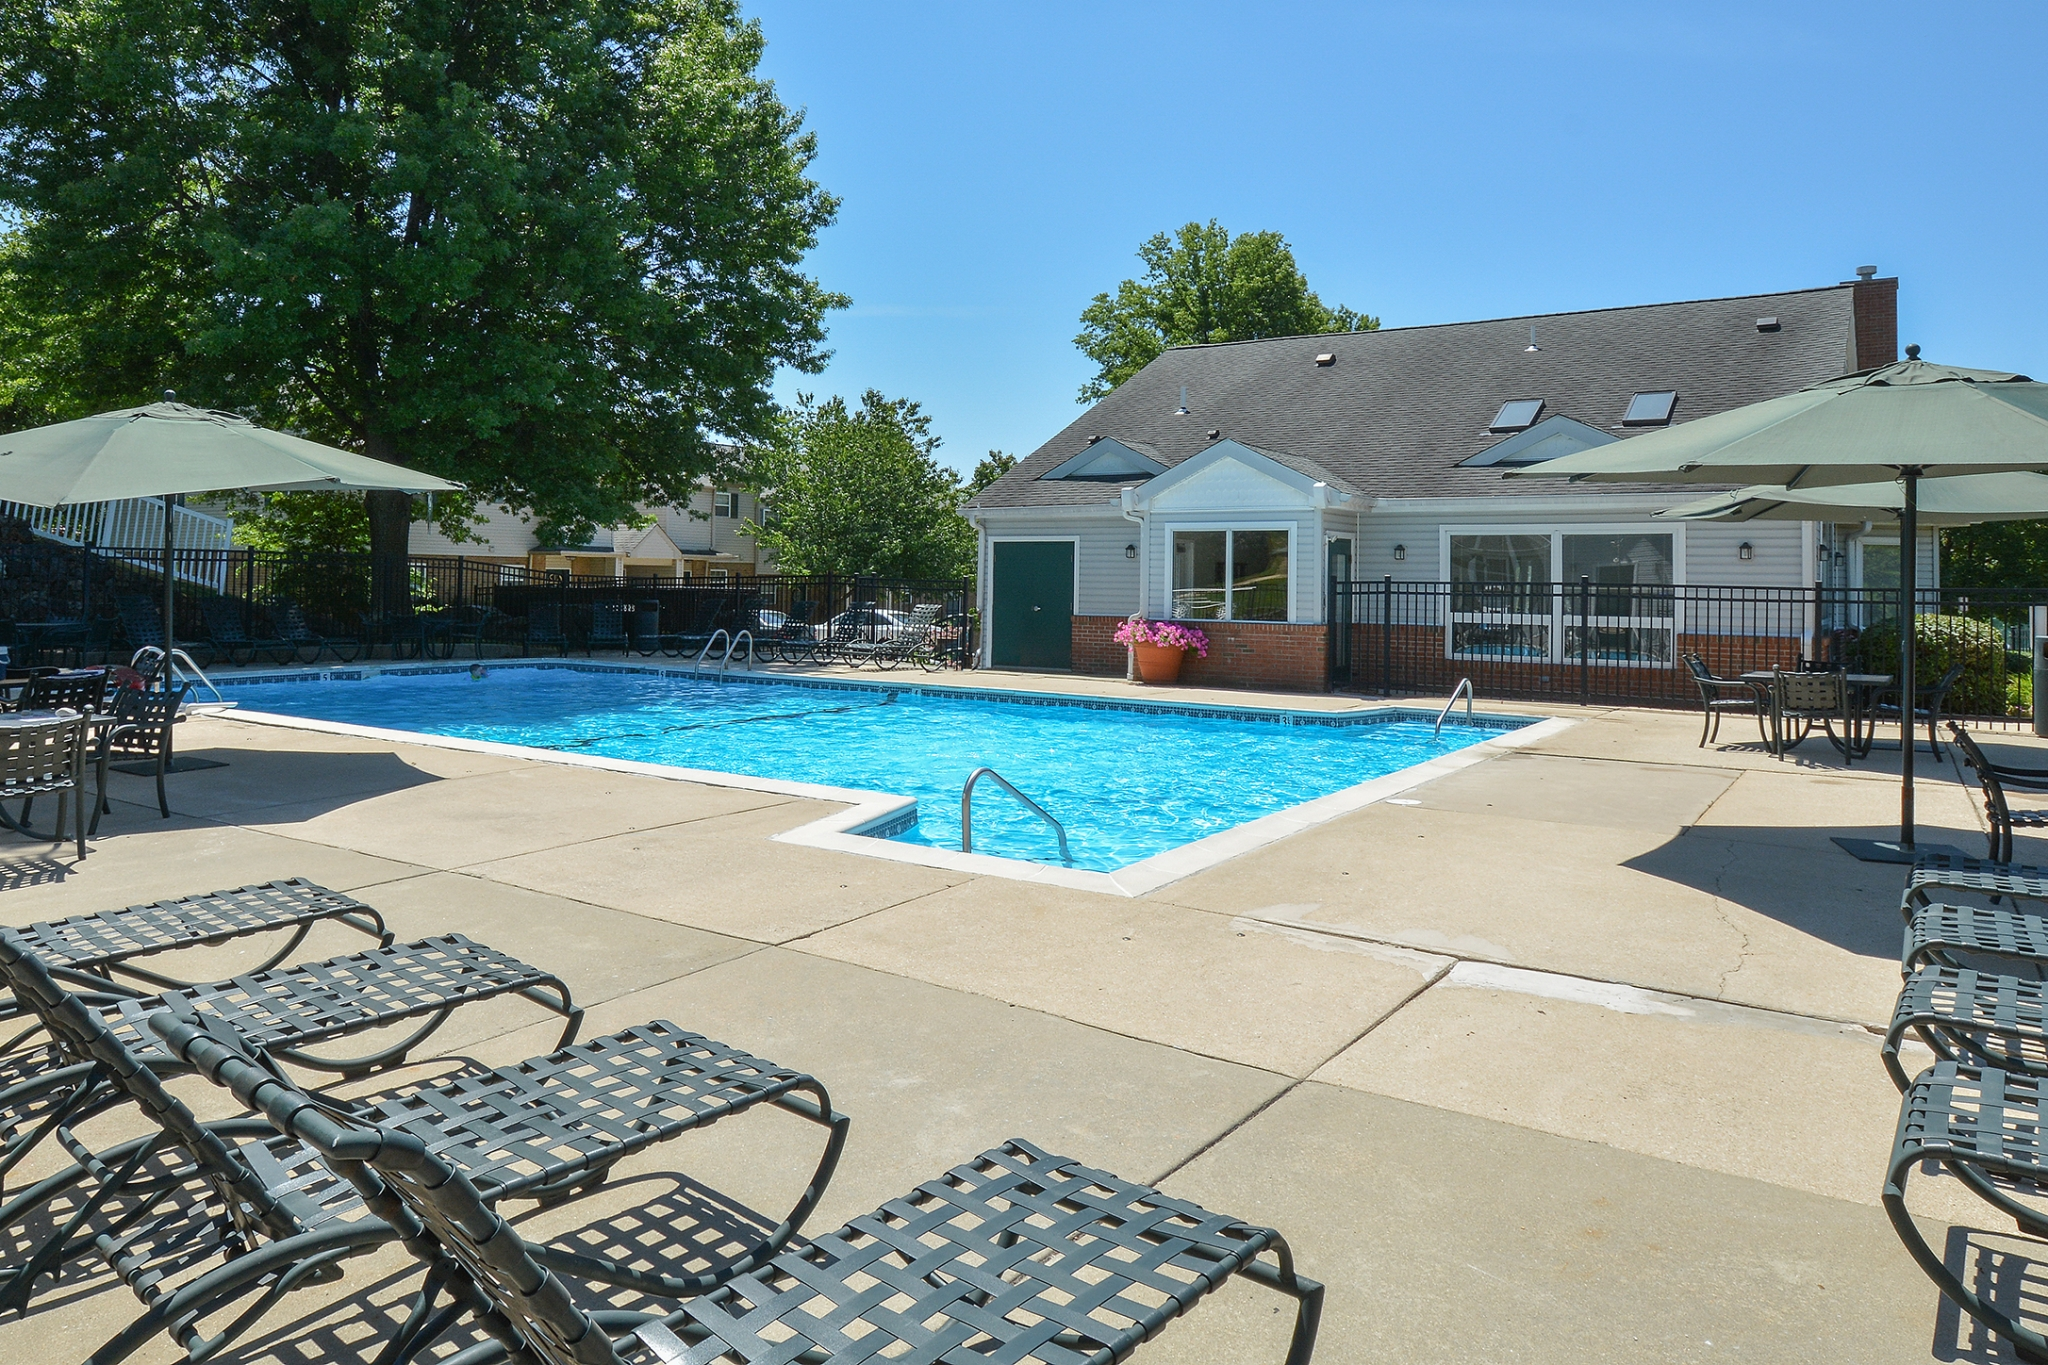 Wyntre Brooke Swimming Pool with Umbrellas | Apartments Near West Chester